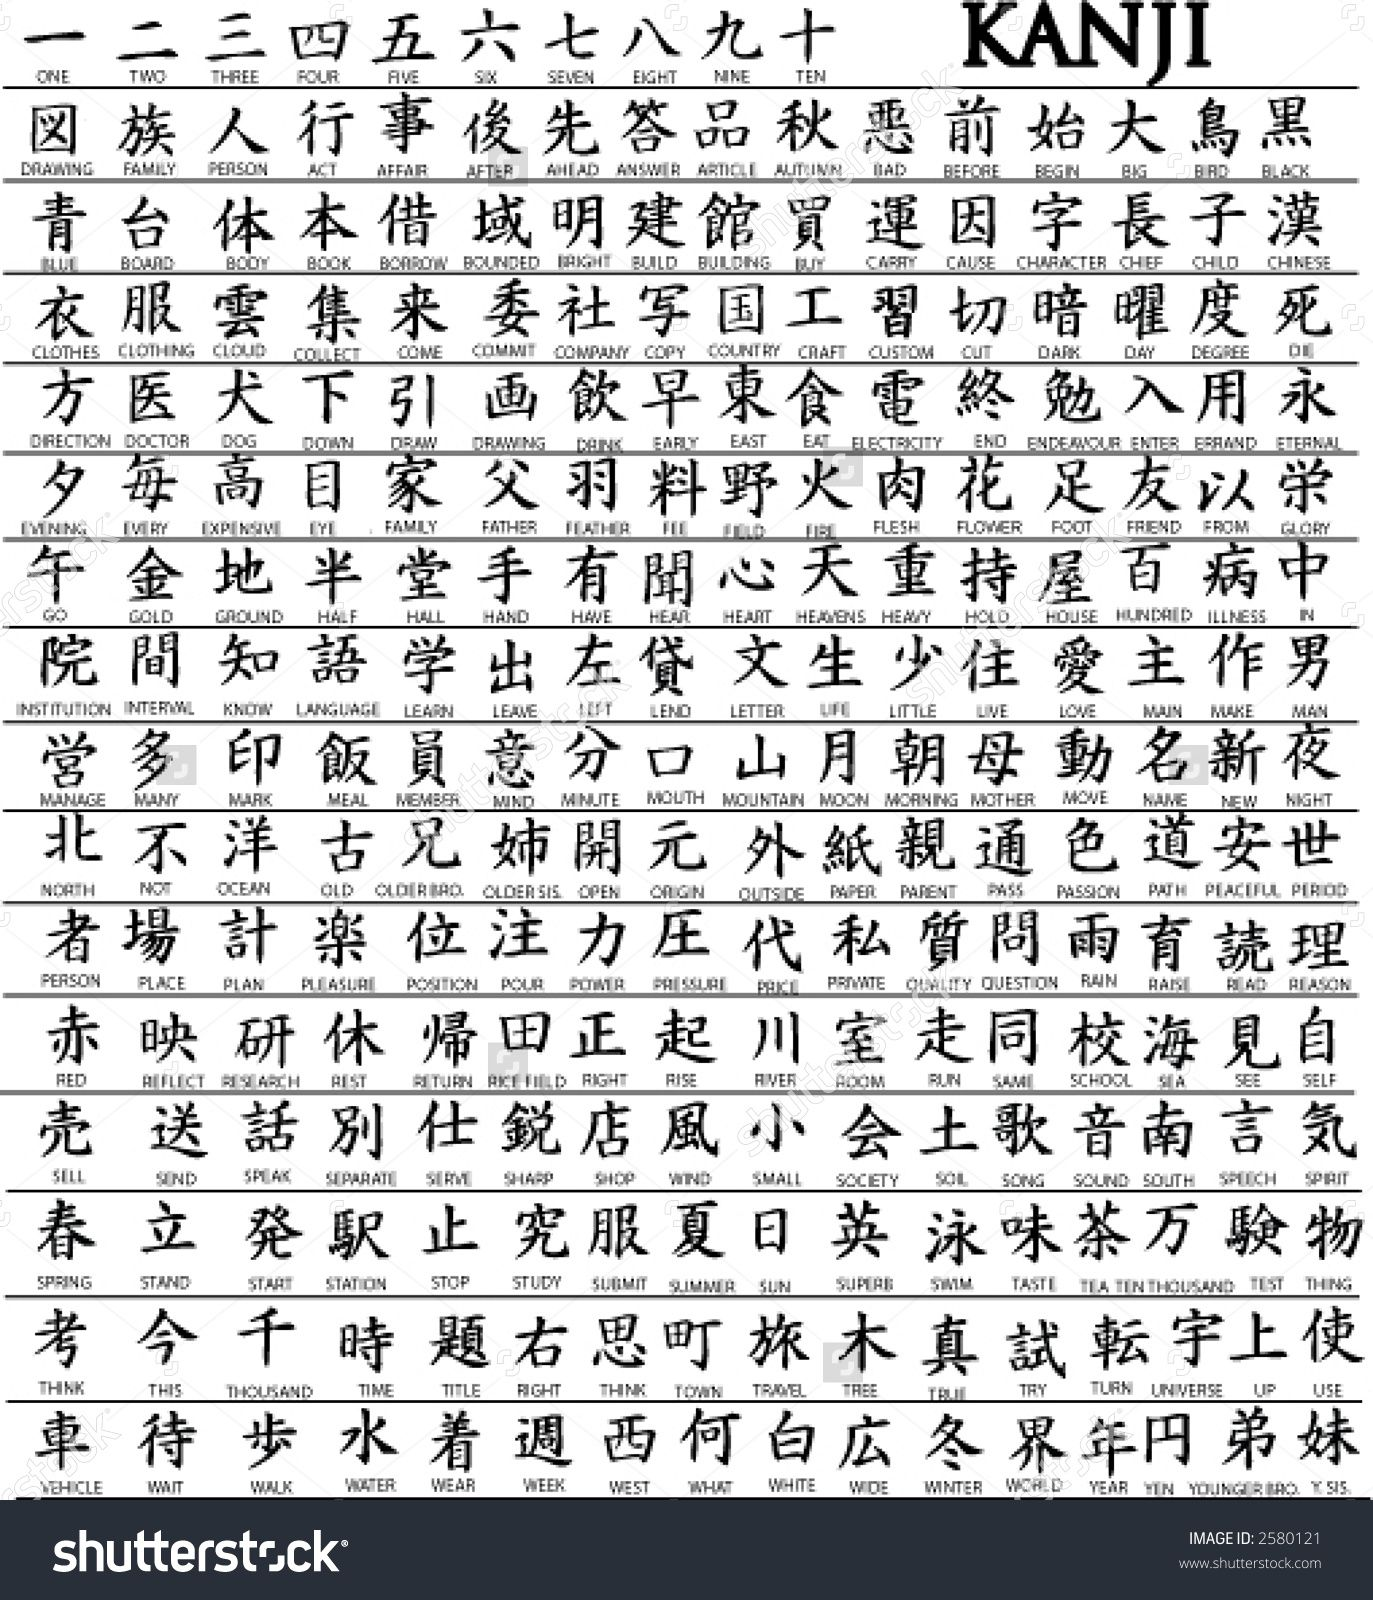 kanji writing translation